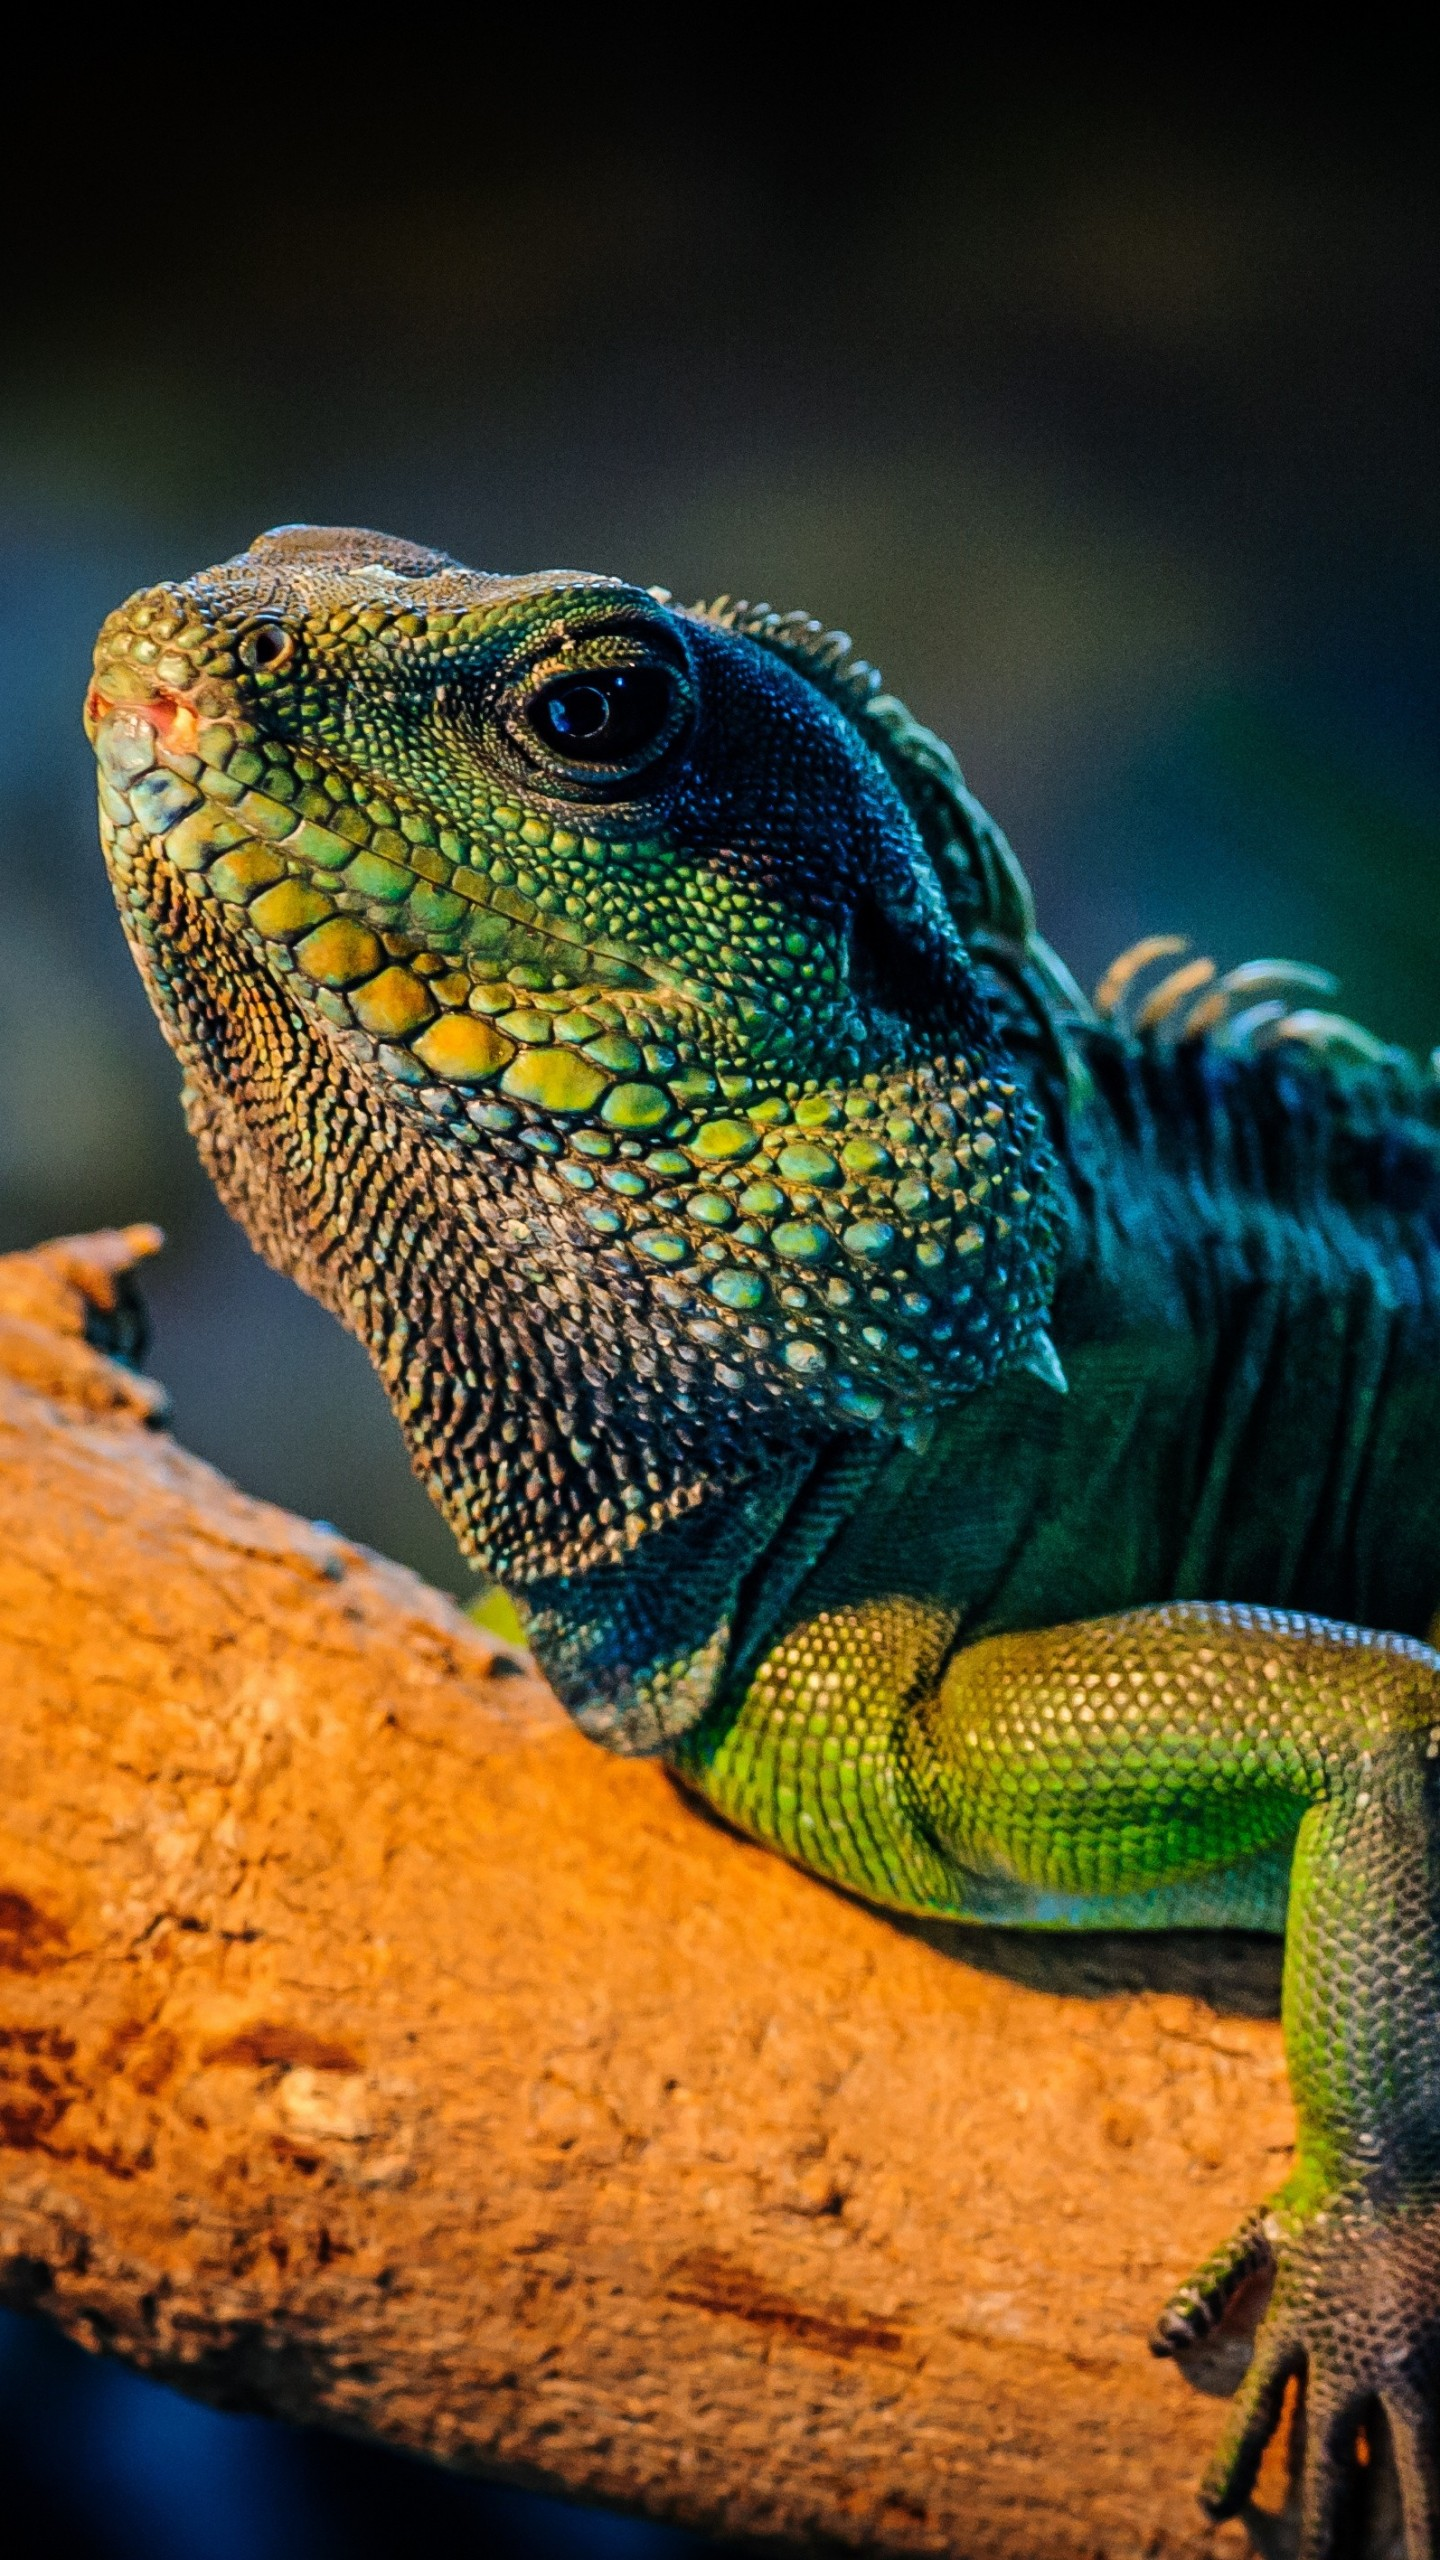 Cute Girly Wallpapers Pinterest Wallpaper Iguana Lizard Cute Animals Animals 4670